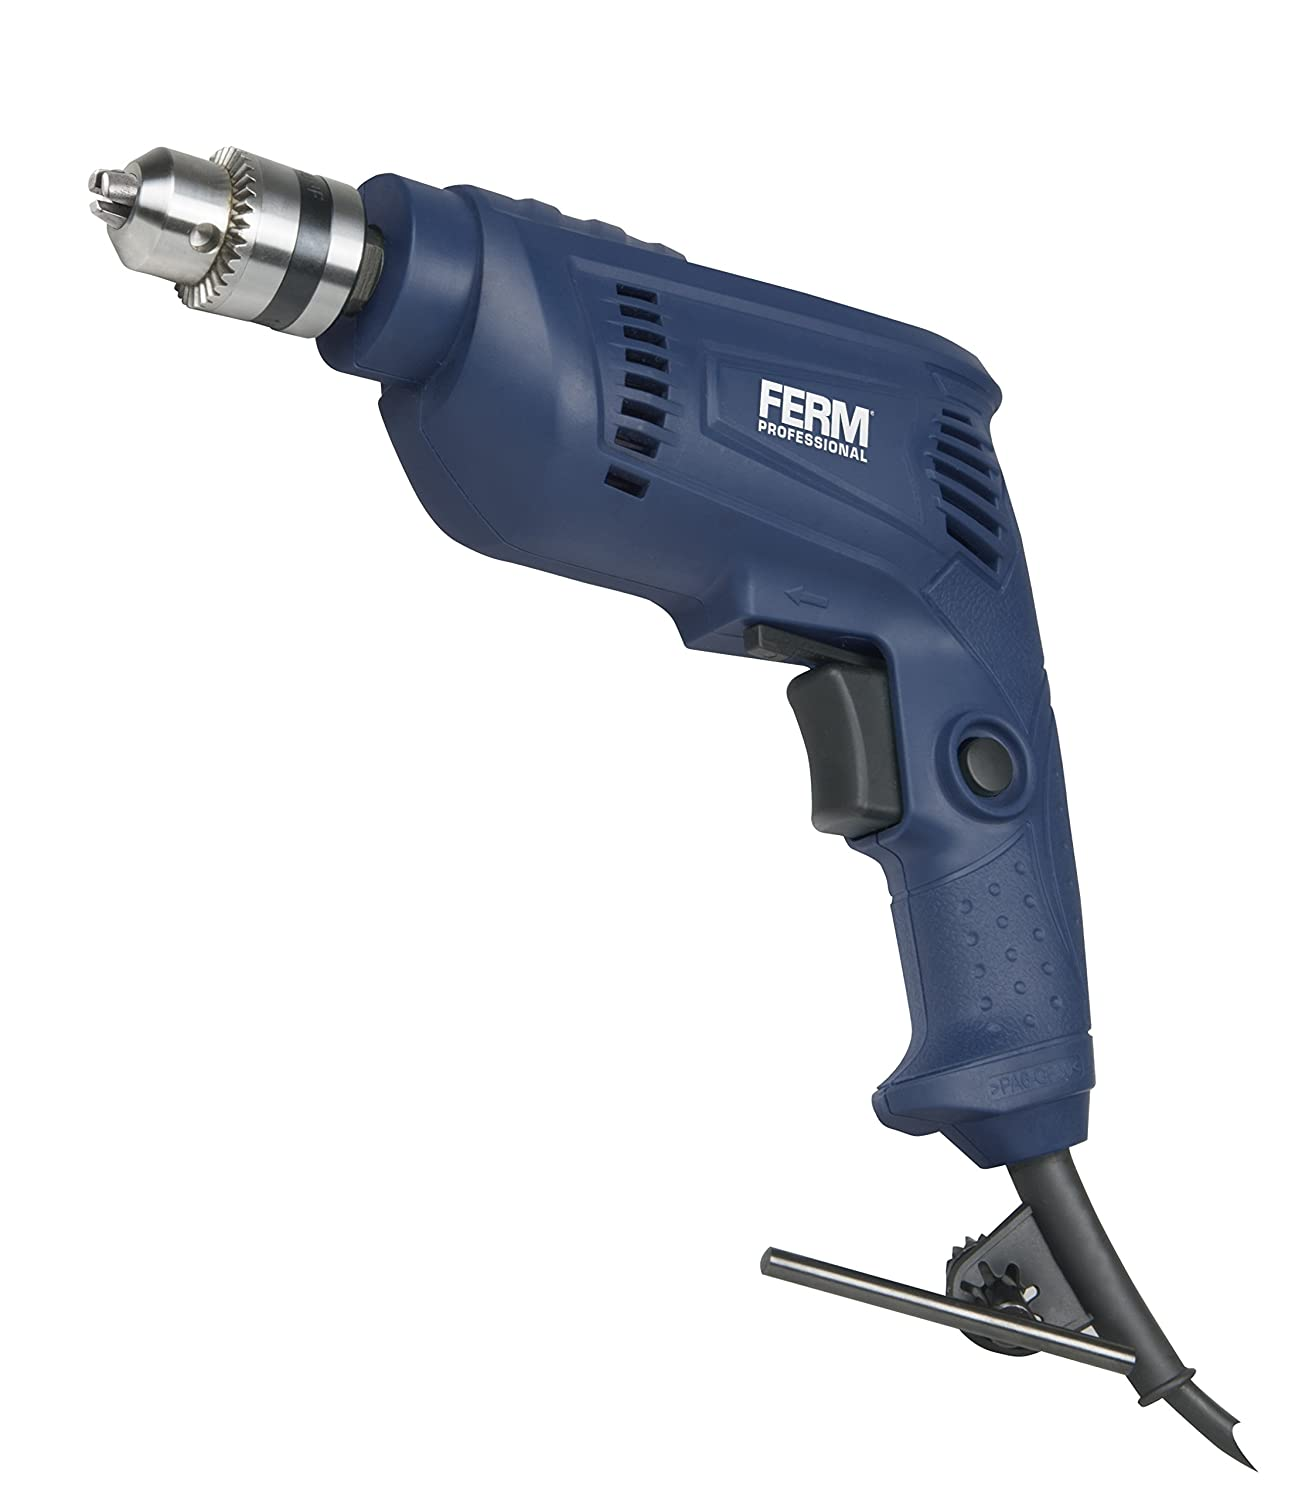 FERM PDM1048P Professional Electric Drill, 450 W, 240 V, Blue